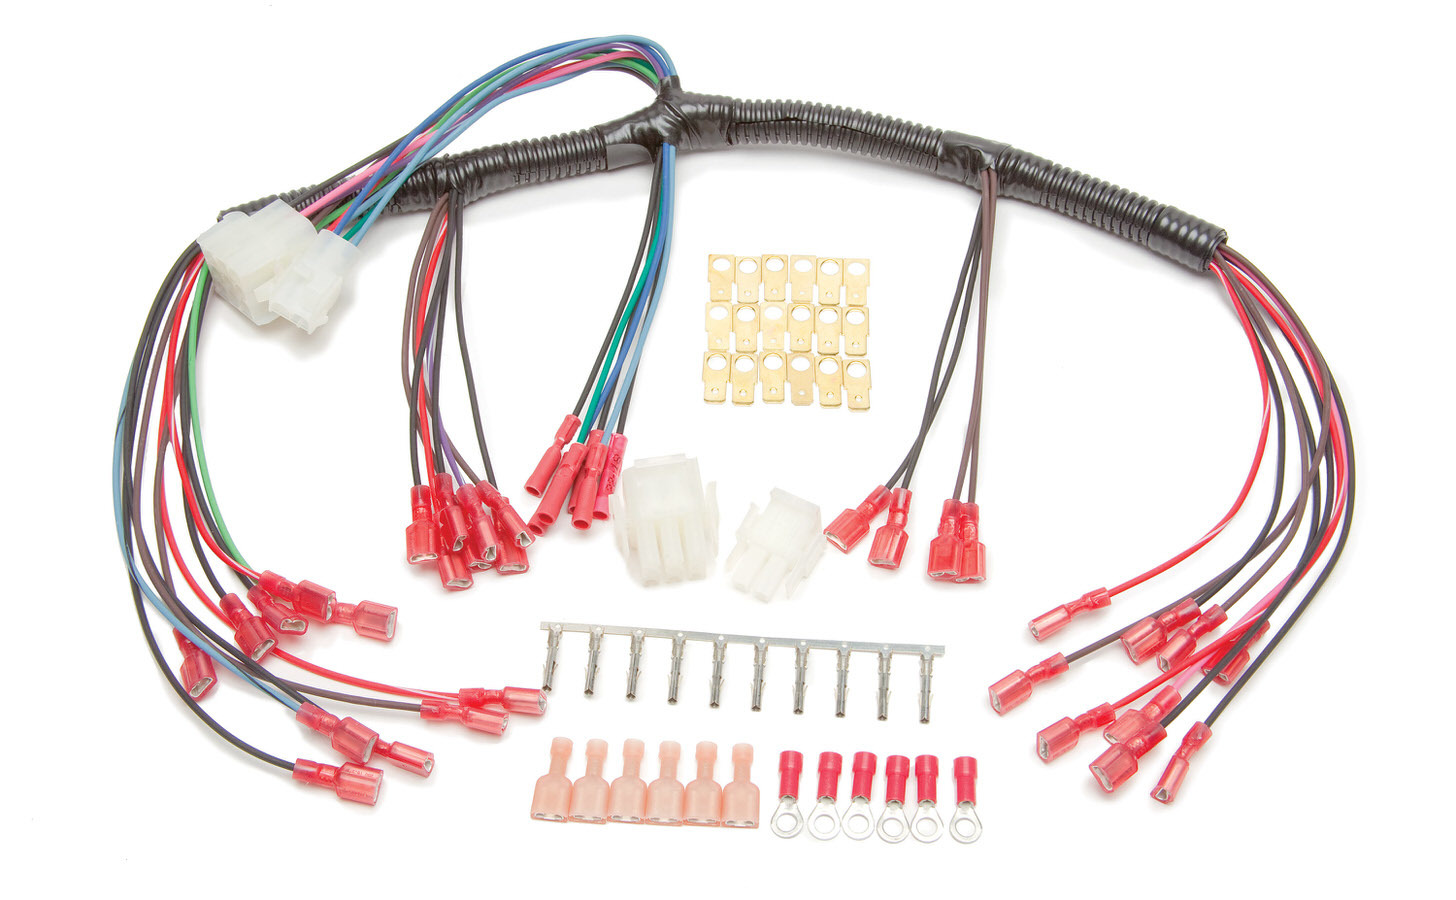 Painless Wiring Dash Harness (Cable Spdo